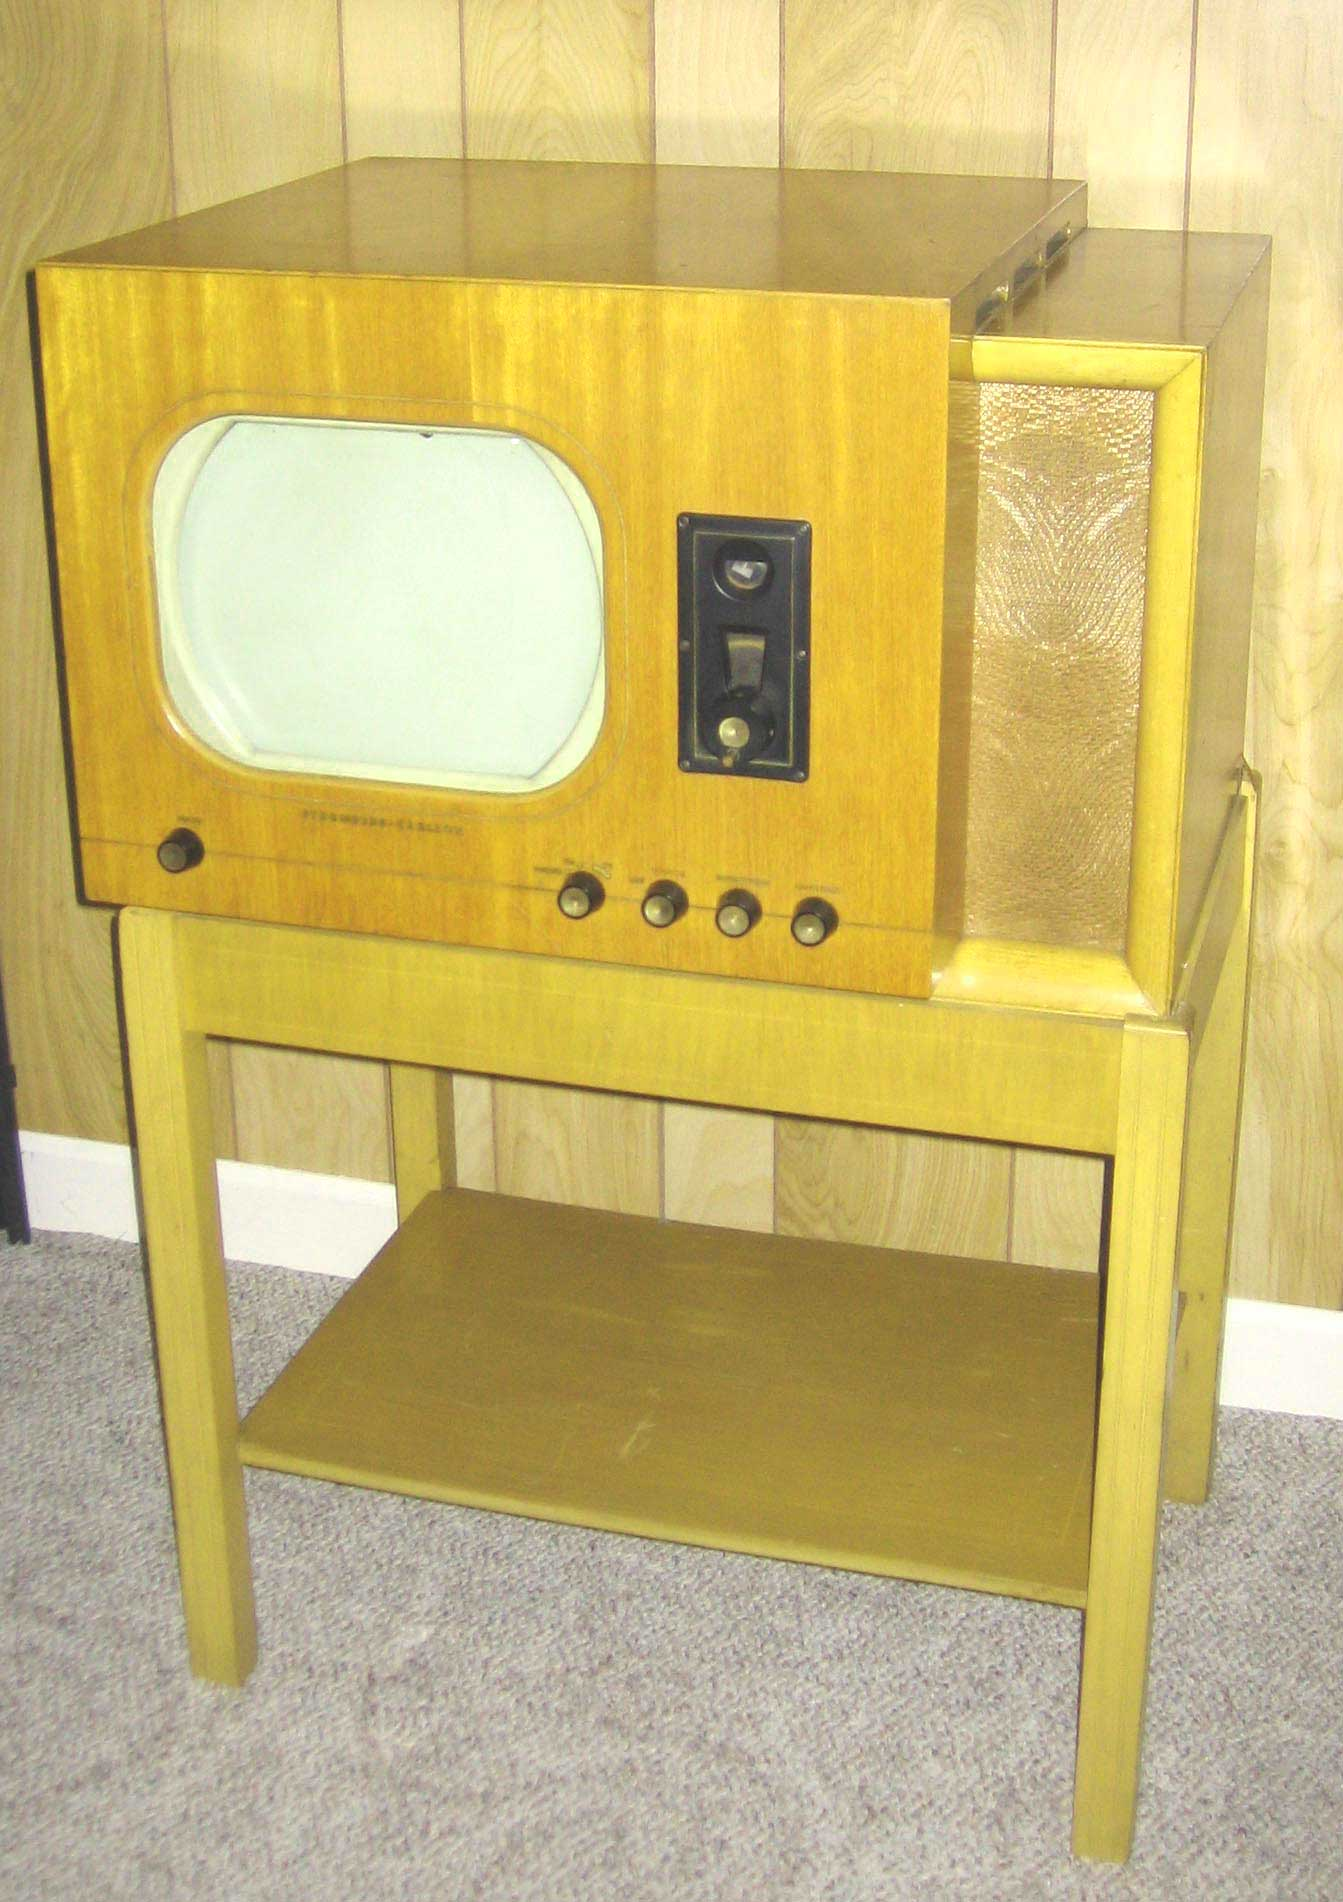 Stromberg Carlson Table Model TV-